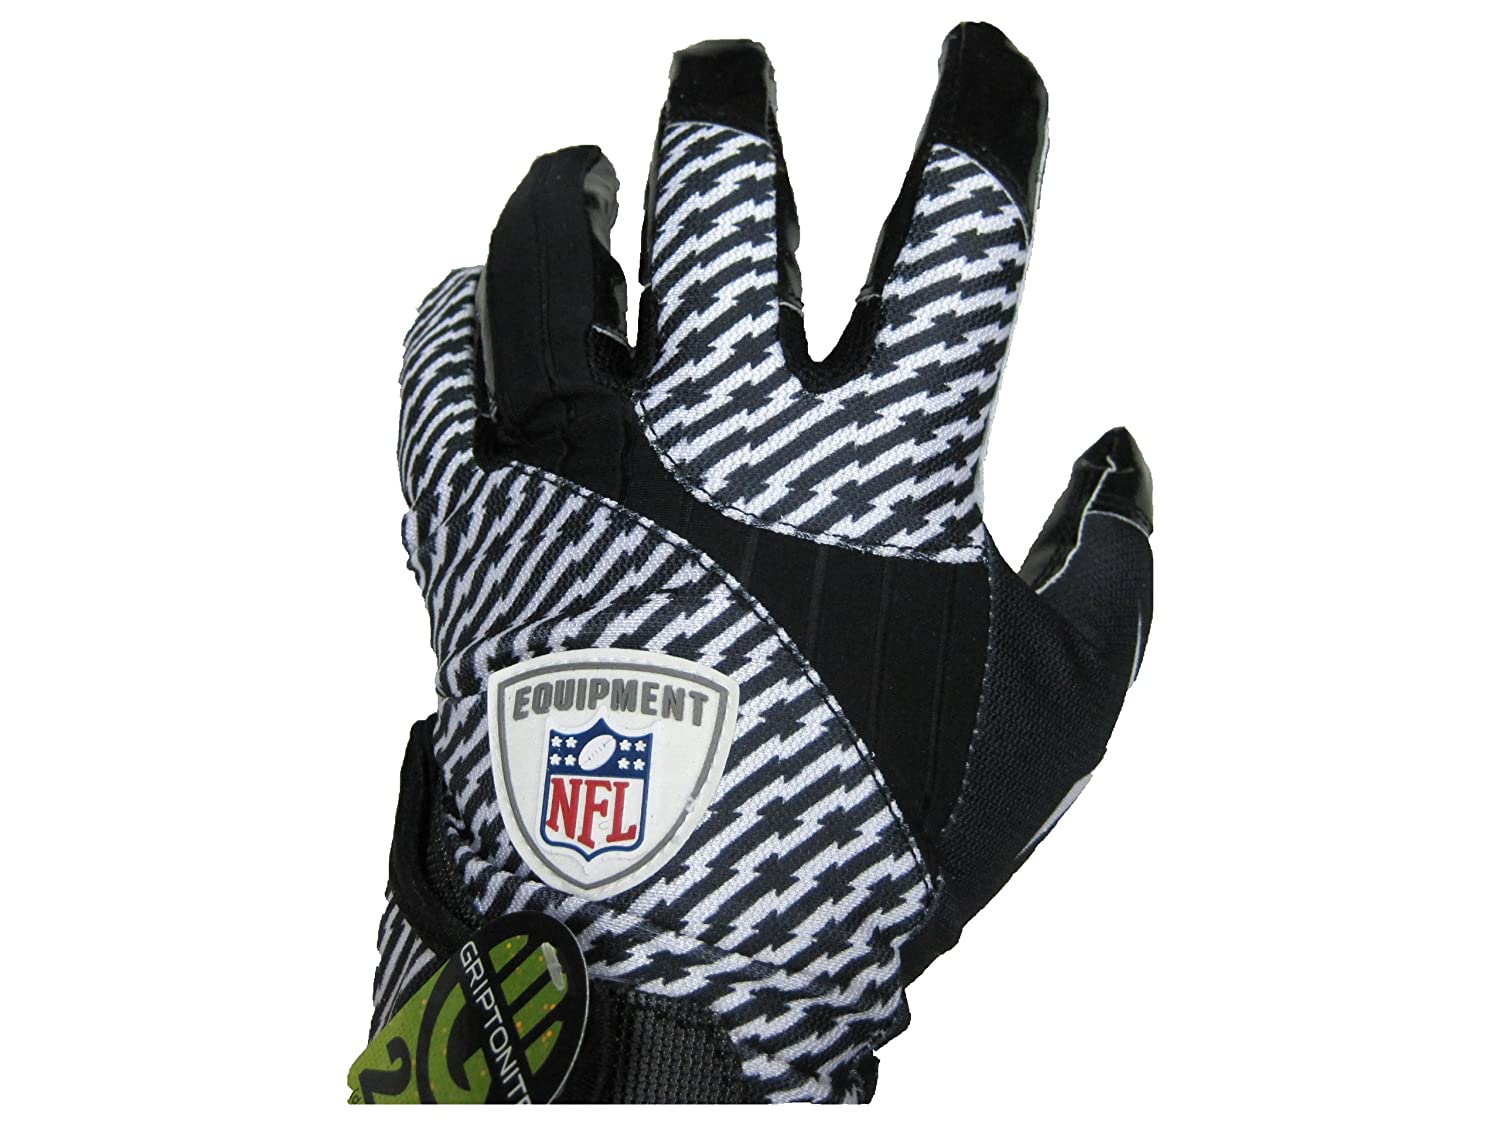 Receiver Gloves Nfl Reebok Nfl Fuel Receiver Quot